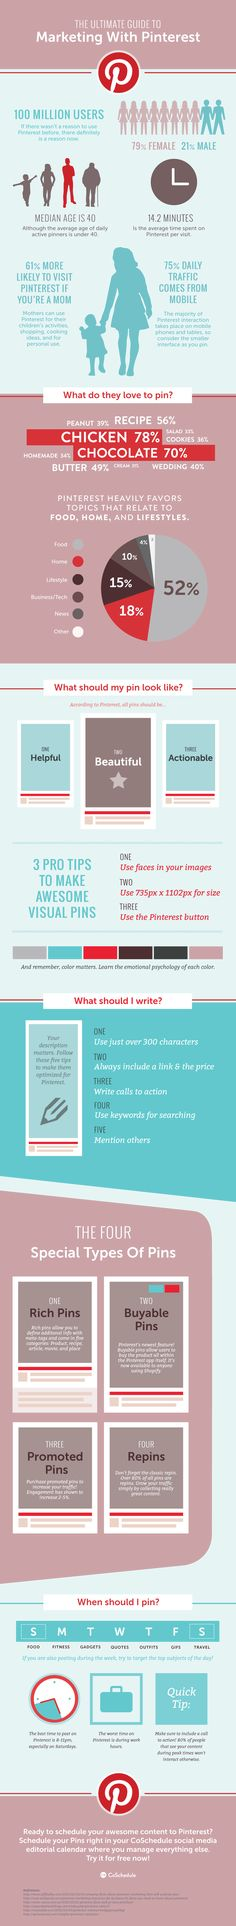 The Ultimate Guide On How To Use Pinterest For Marketing   Infographic